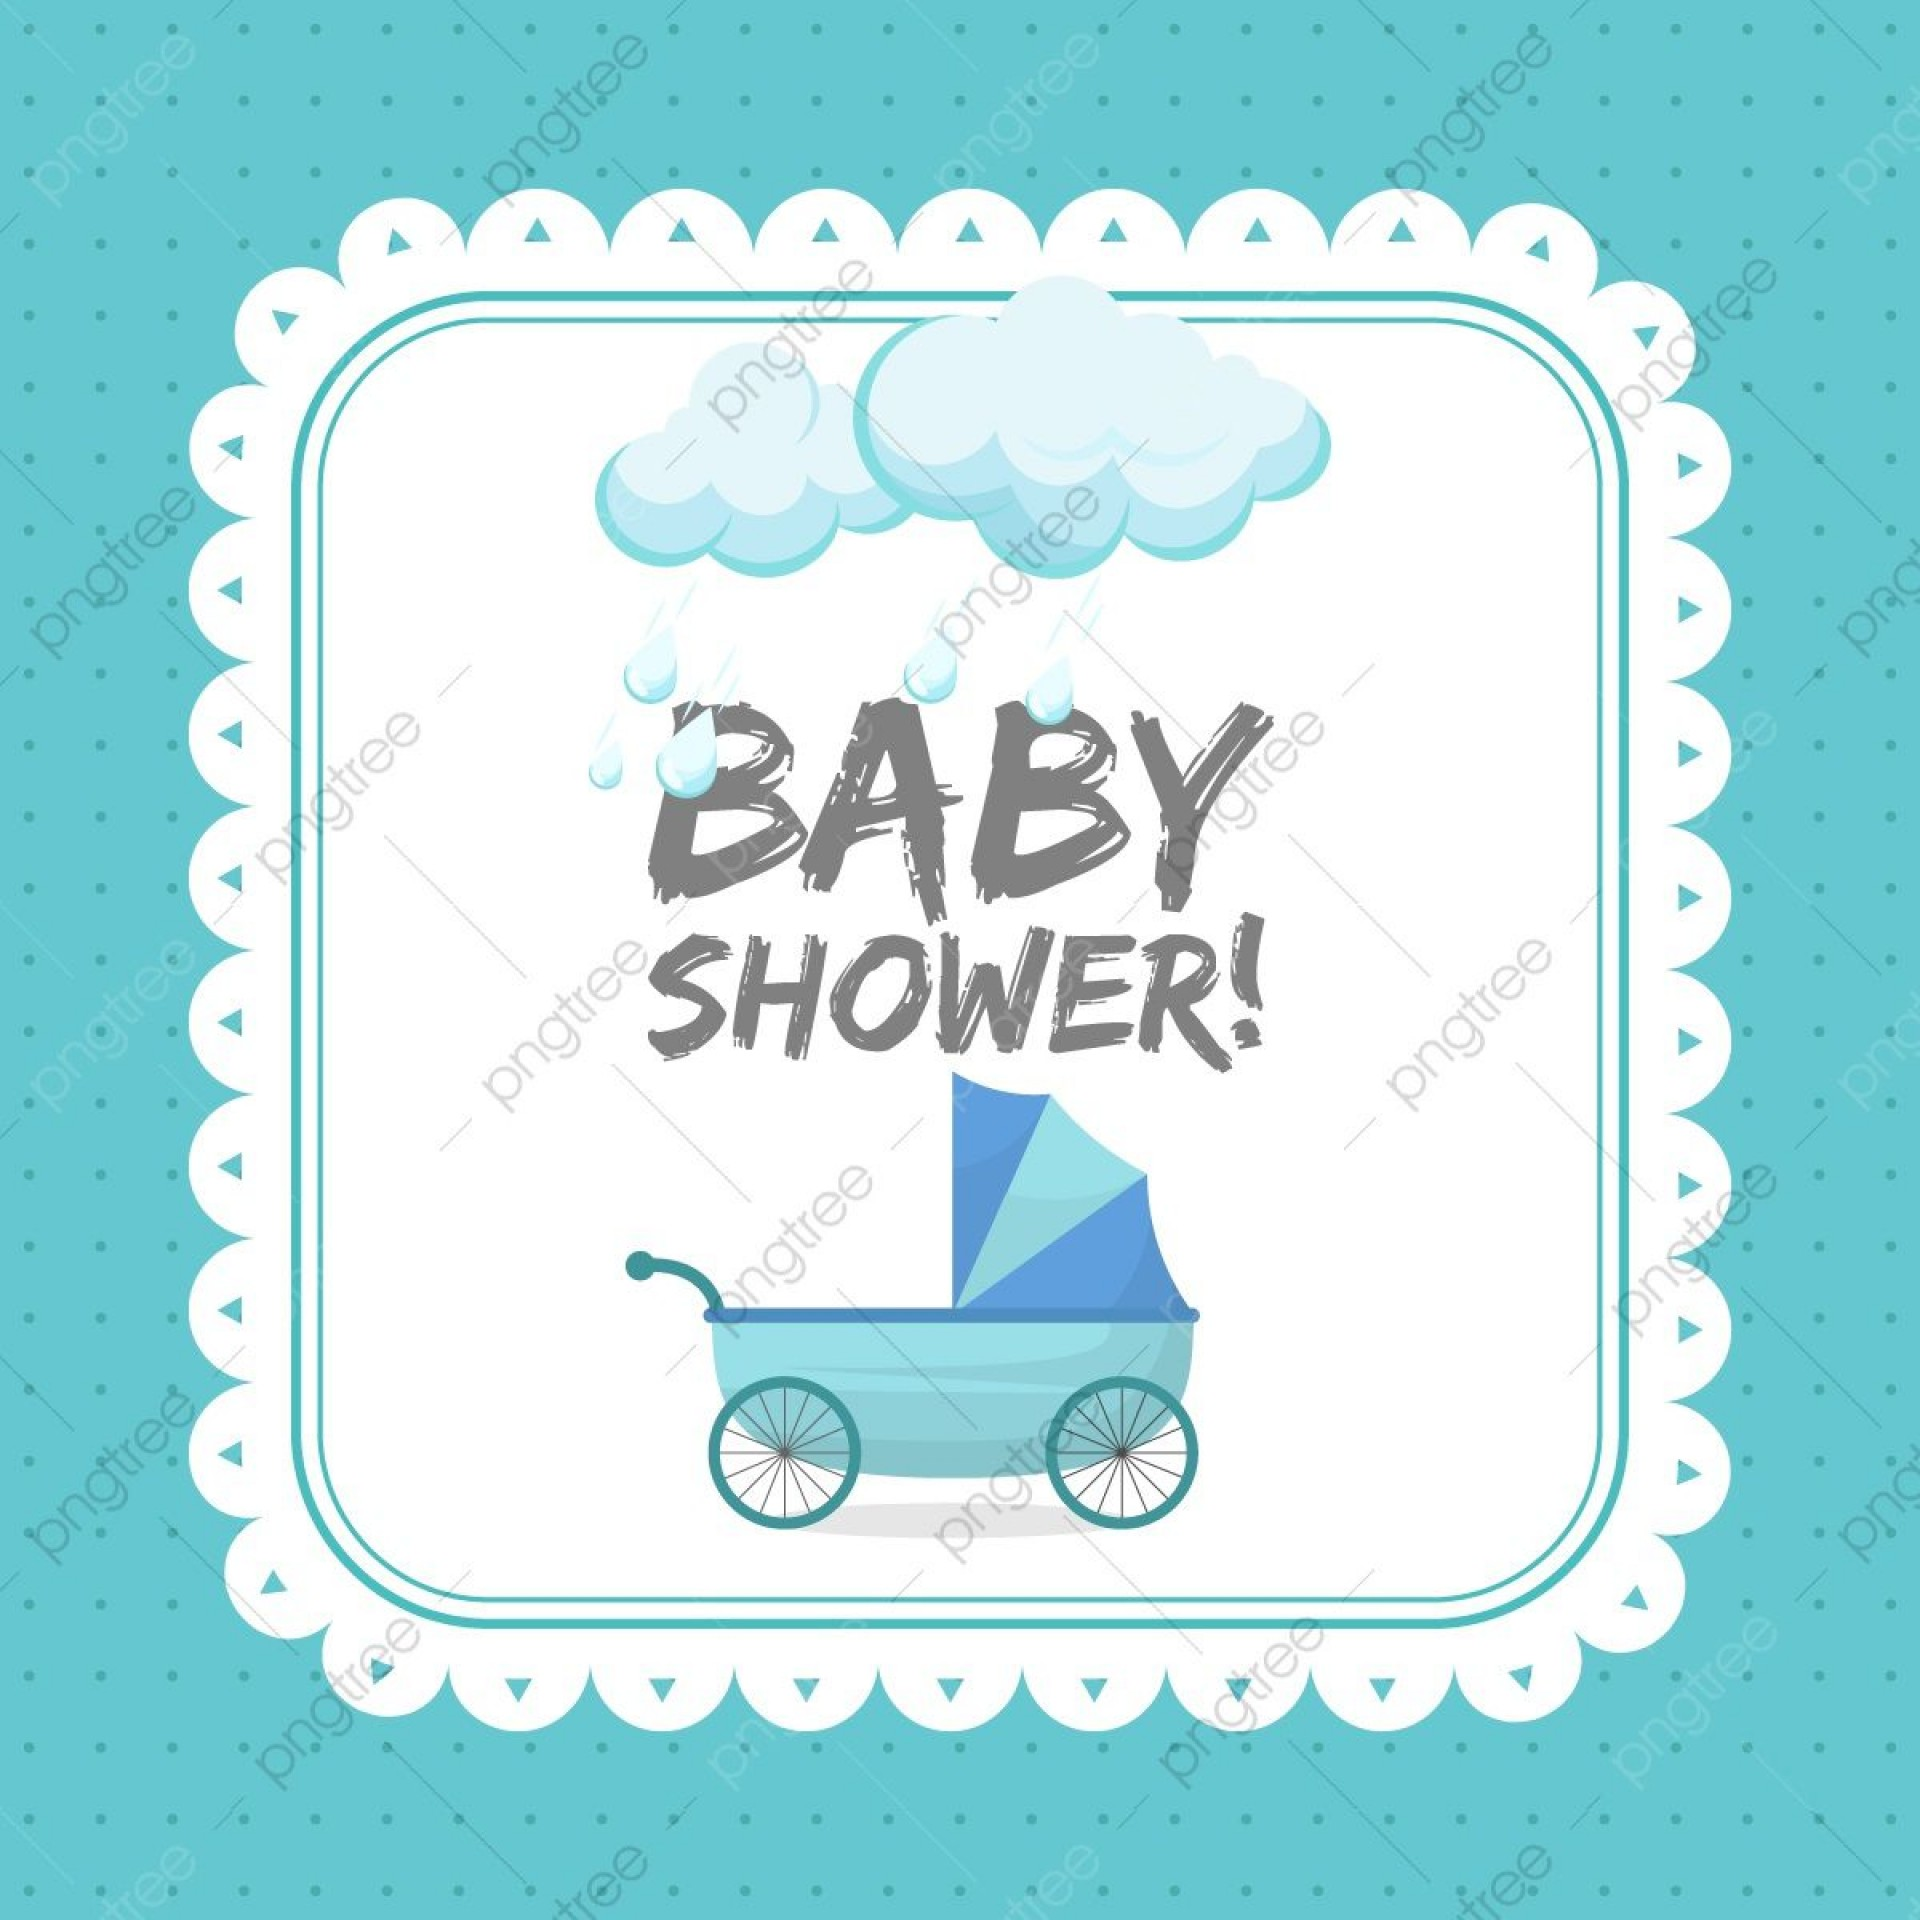 009 Top Baby Shower Invitation Card Template Free Download Example  Indian1920